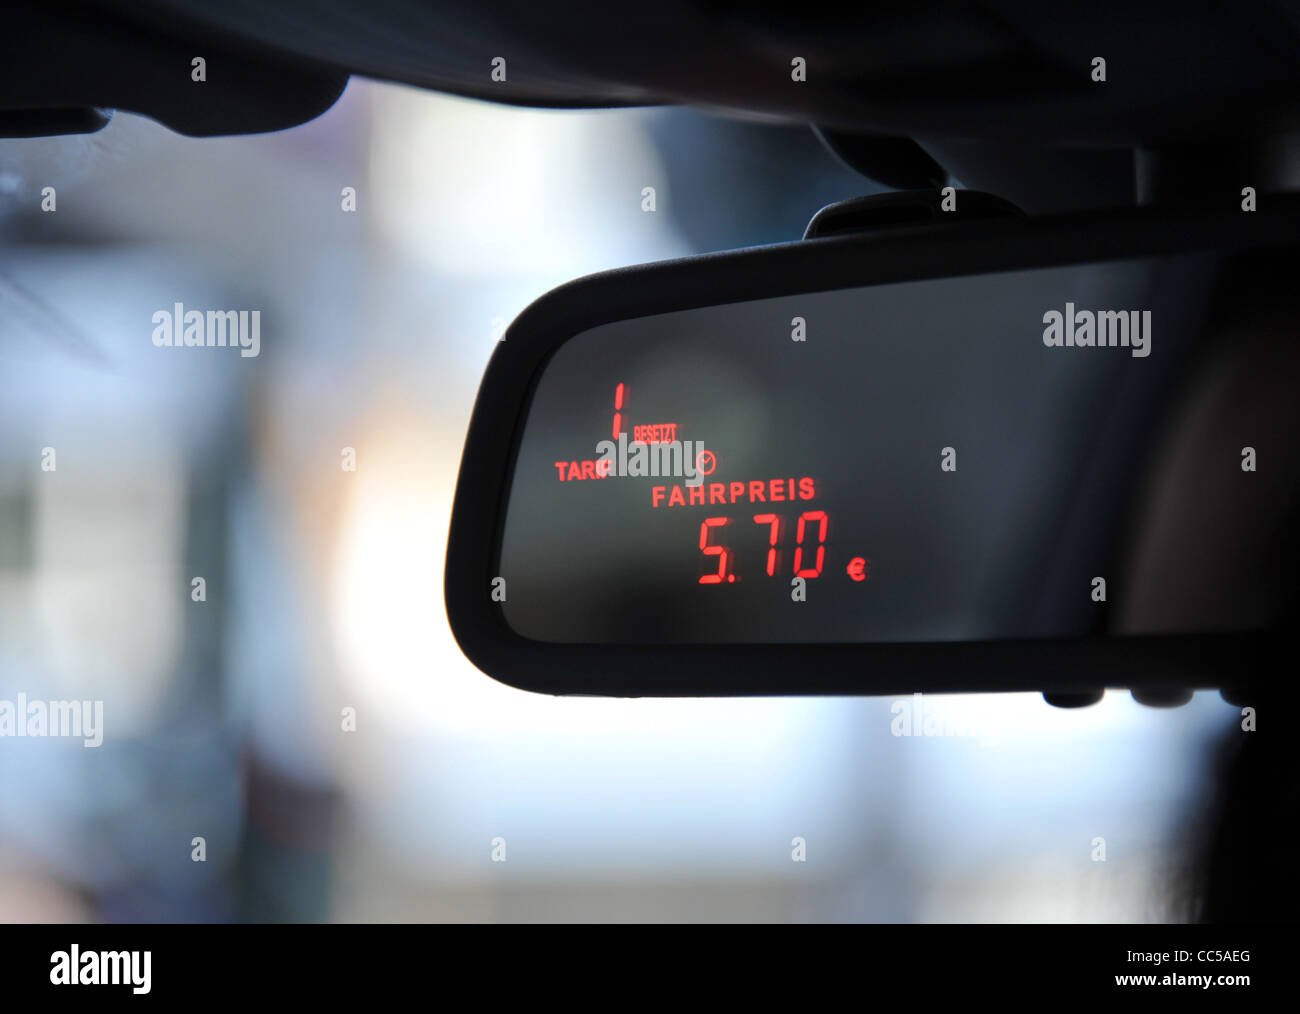 Taximeter Stock Photos & Taximeter Stock Images - Alamy